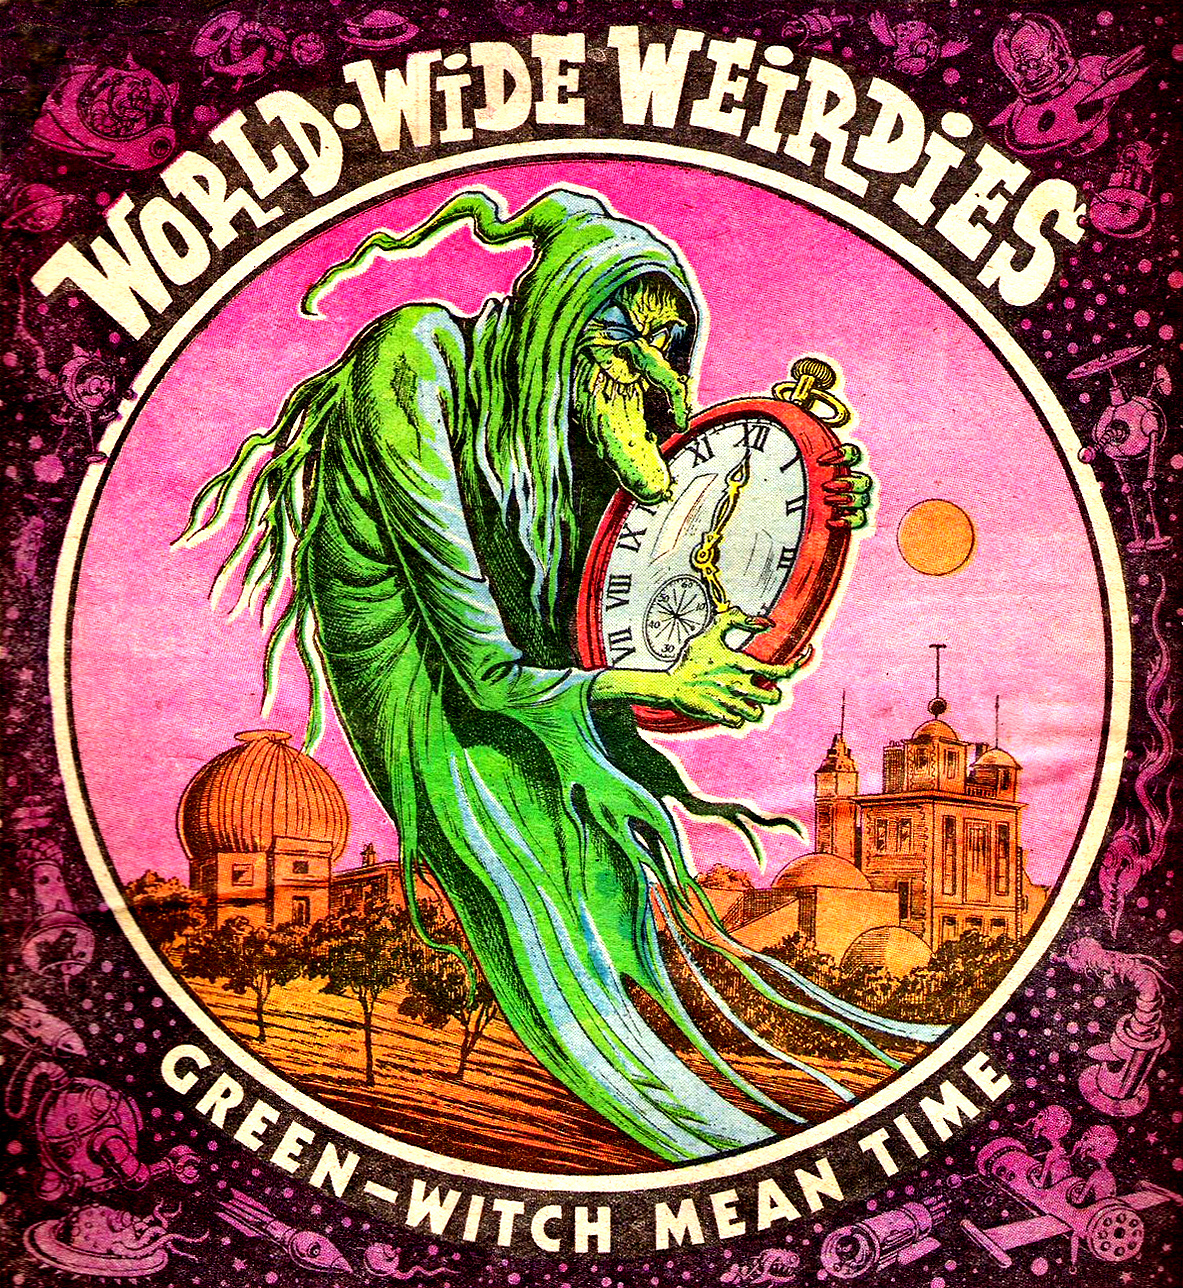 Ken Reid - World Wide Weirdies 22